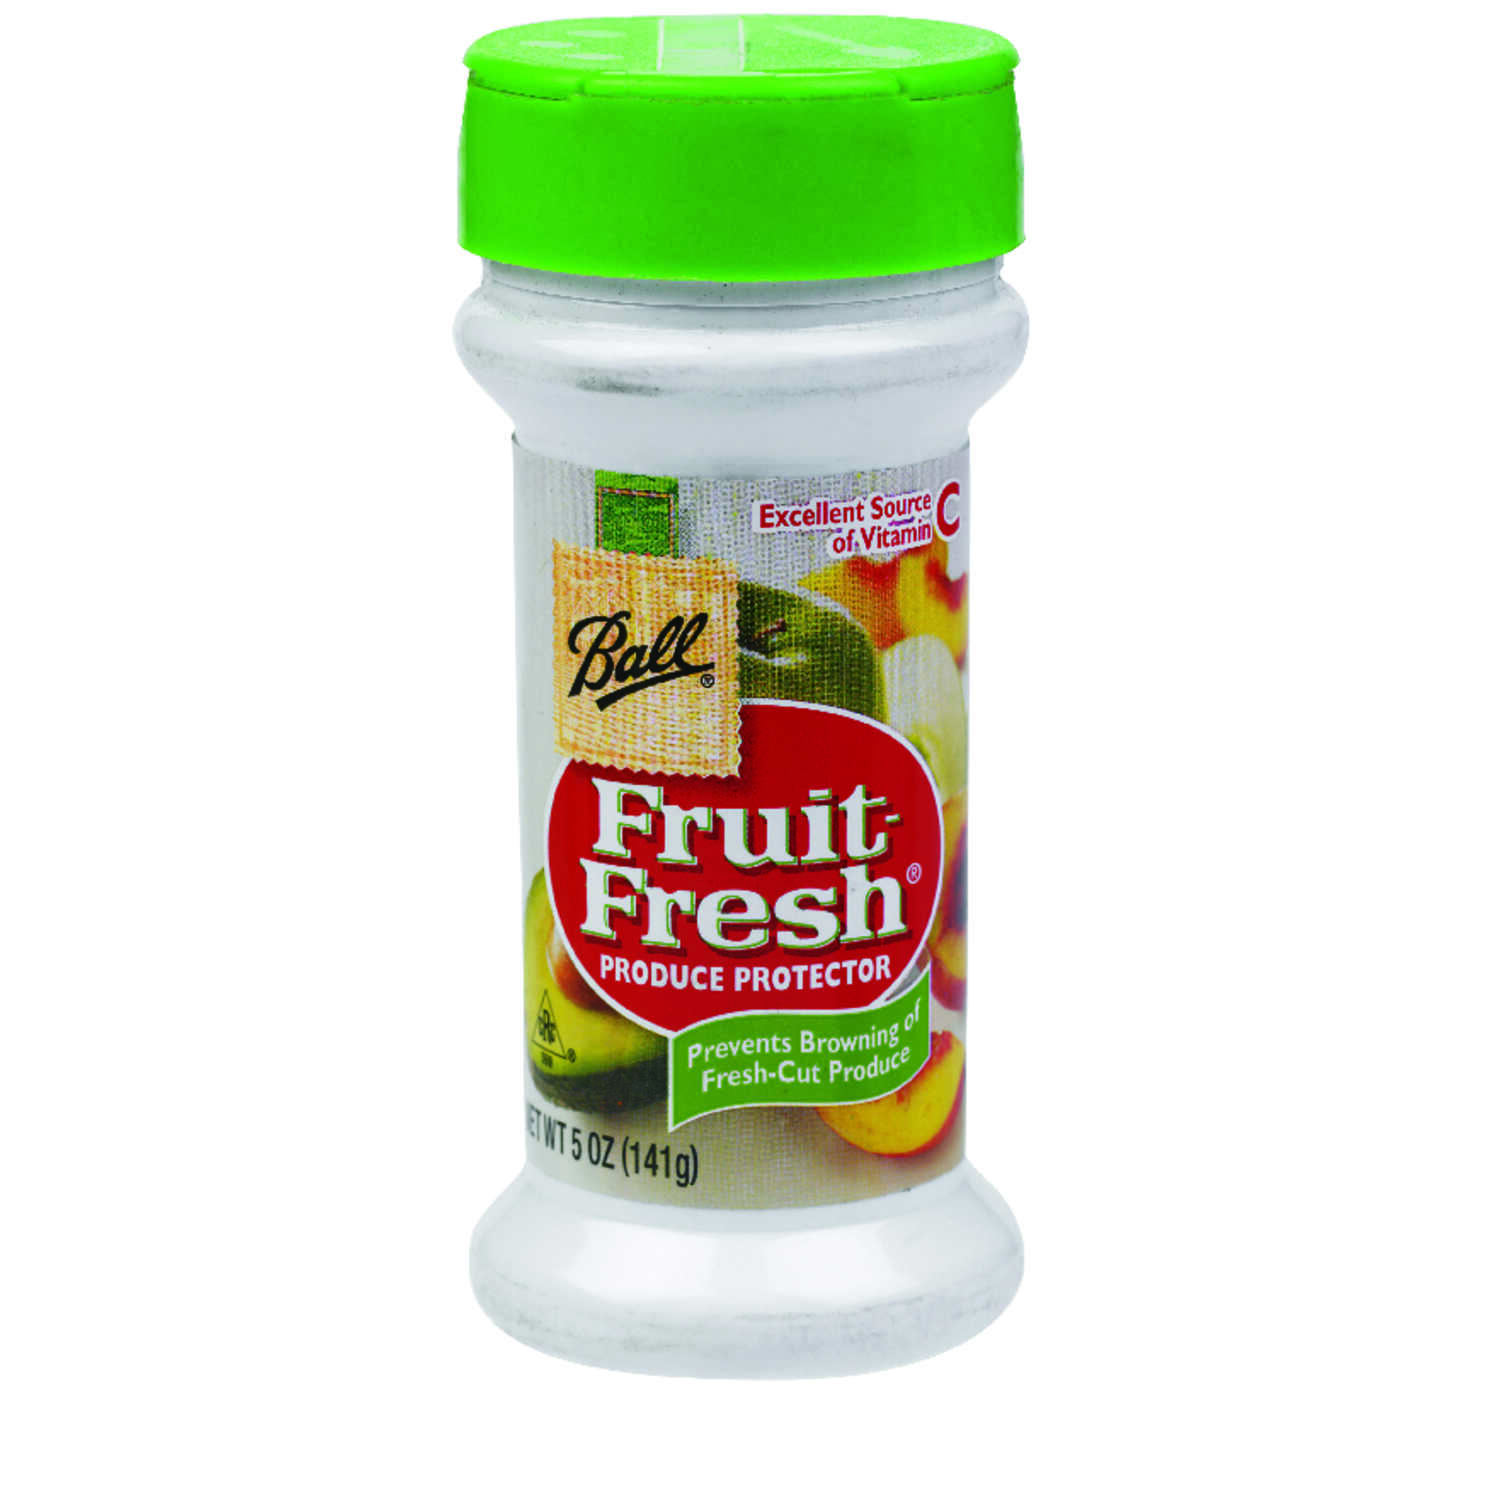 Ball  Fruit Fresh  Produce Protector  5 oz.